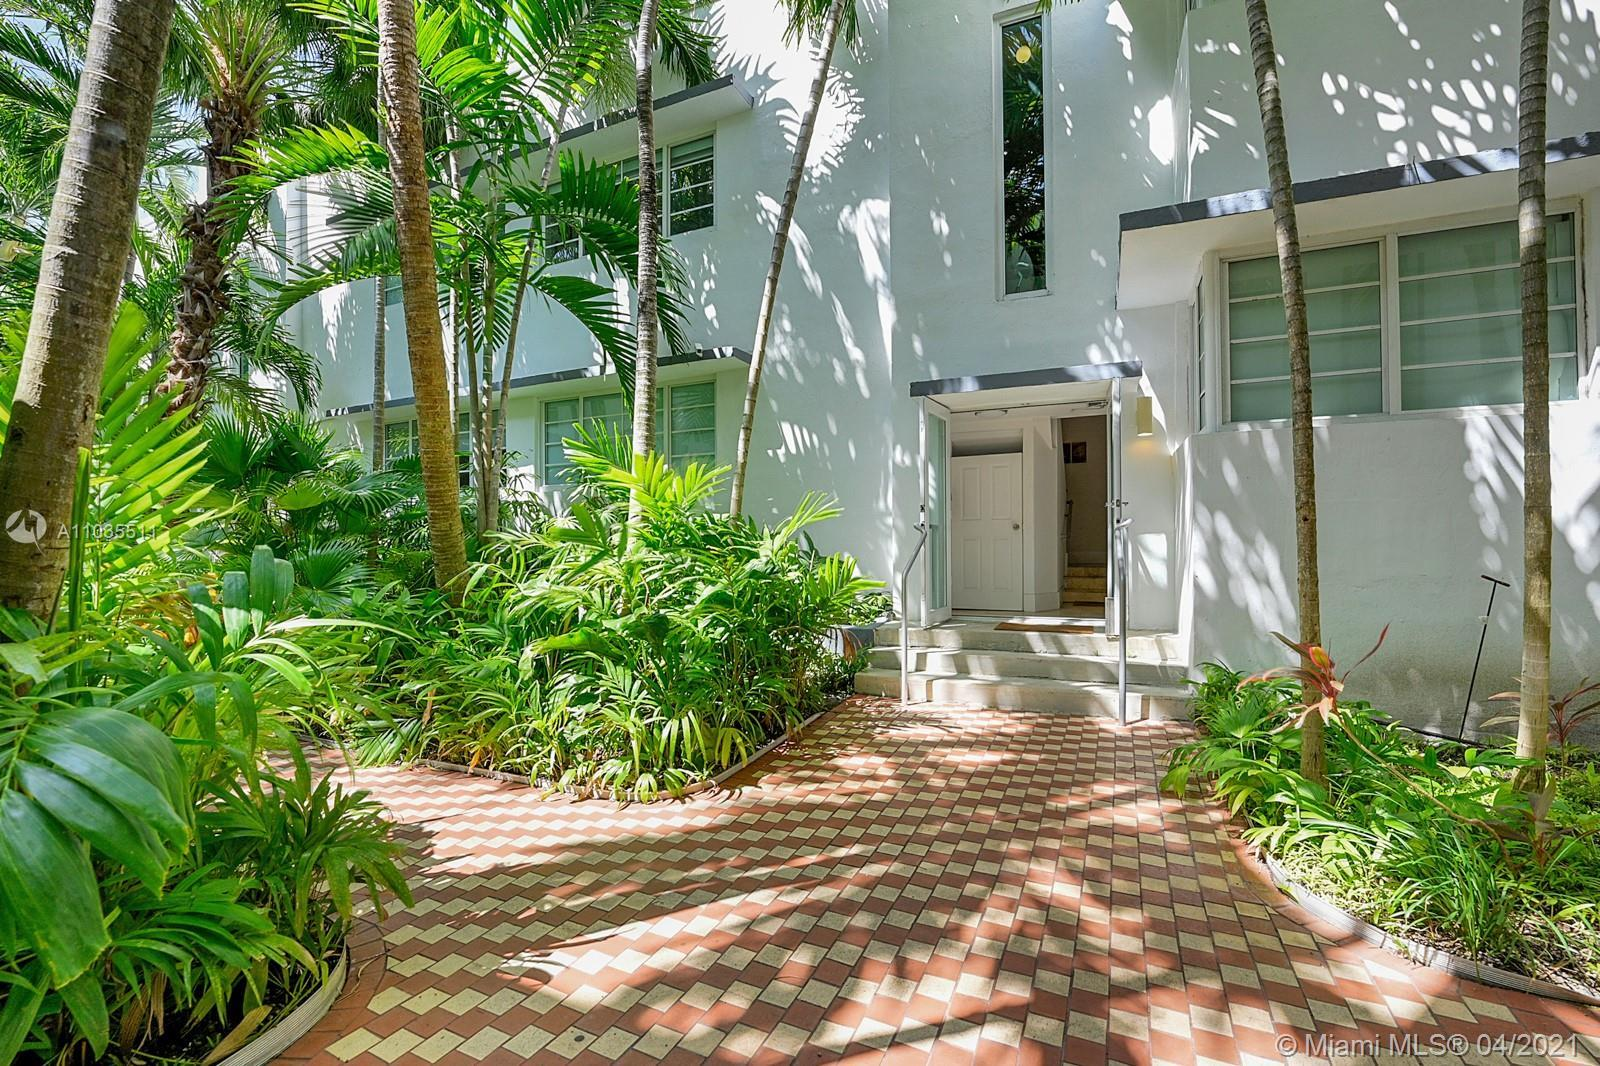 Great opportunity to invest in Miami Beach. Located on a quiet street with lush tropical trees it is